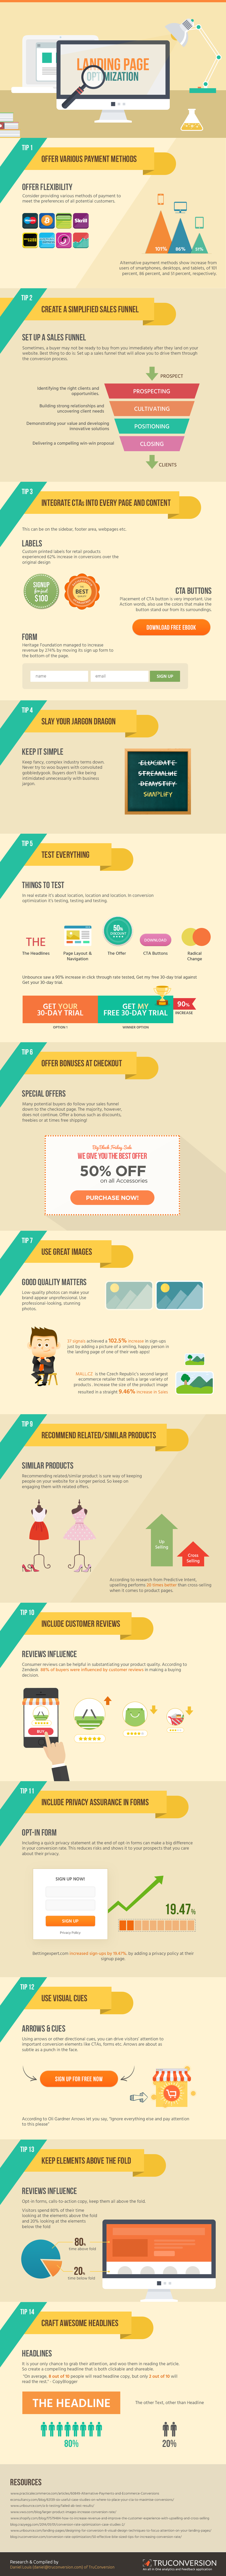 14 Tips to Optimize Your Landing Page Conversions